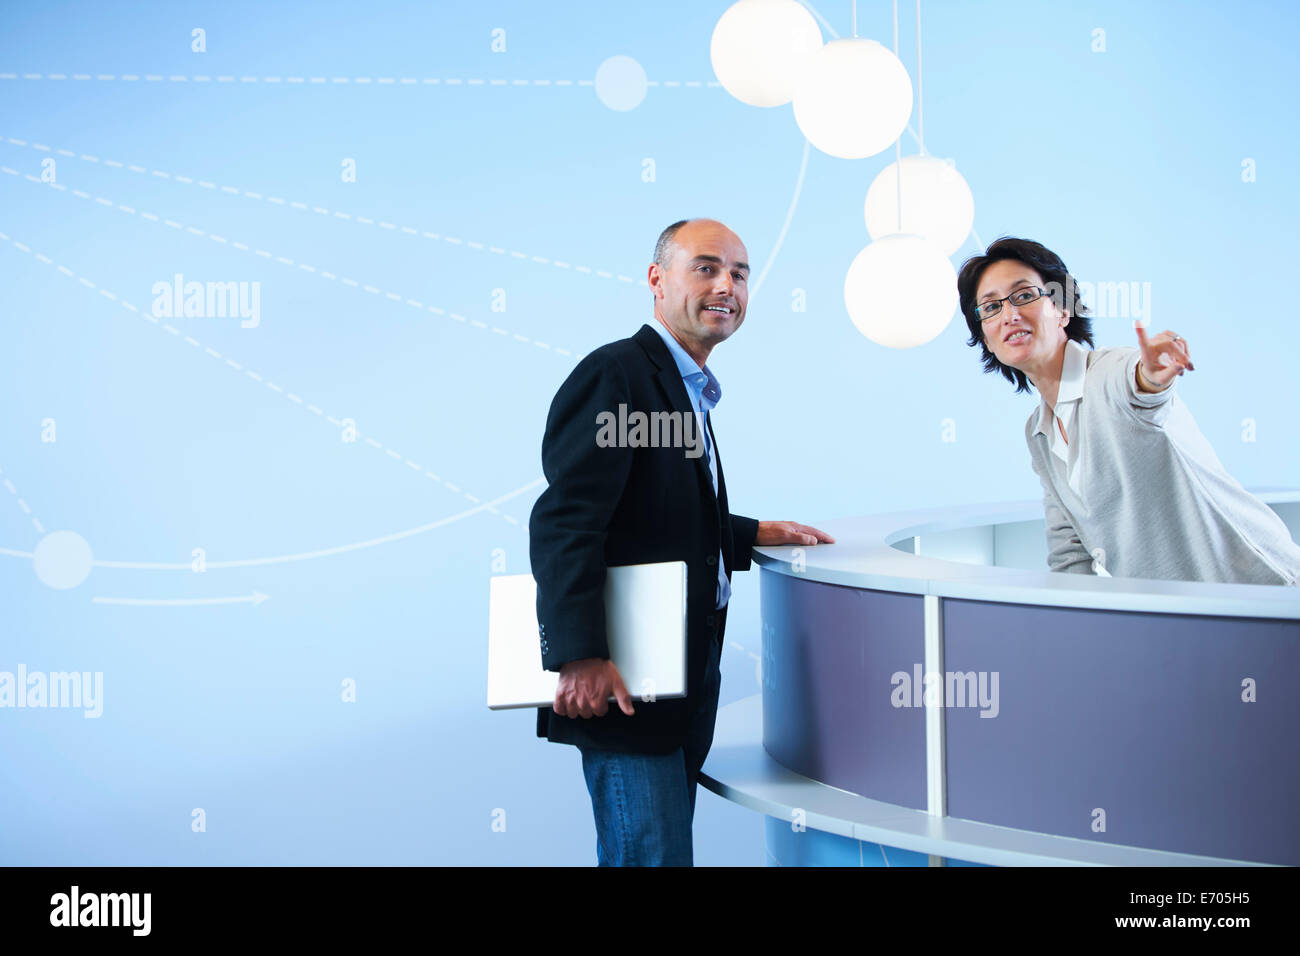 Mature adult man asking receptionist for directions - Stock Image